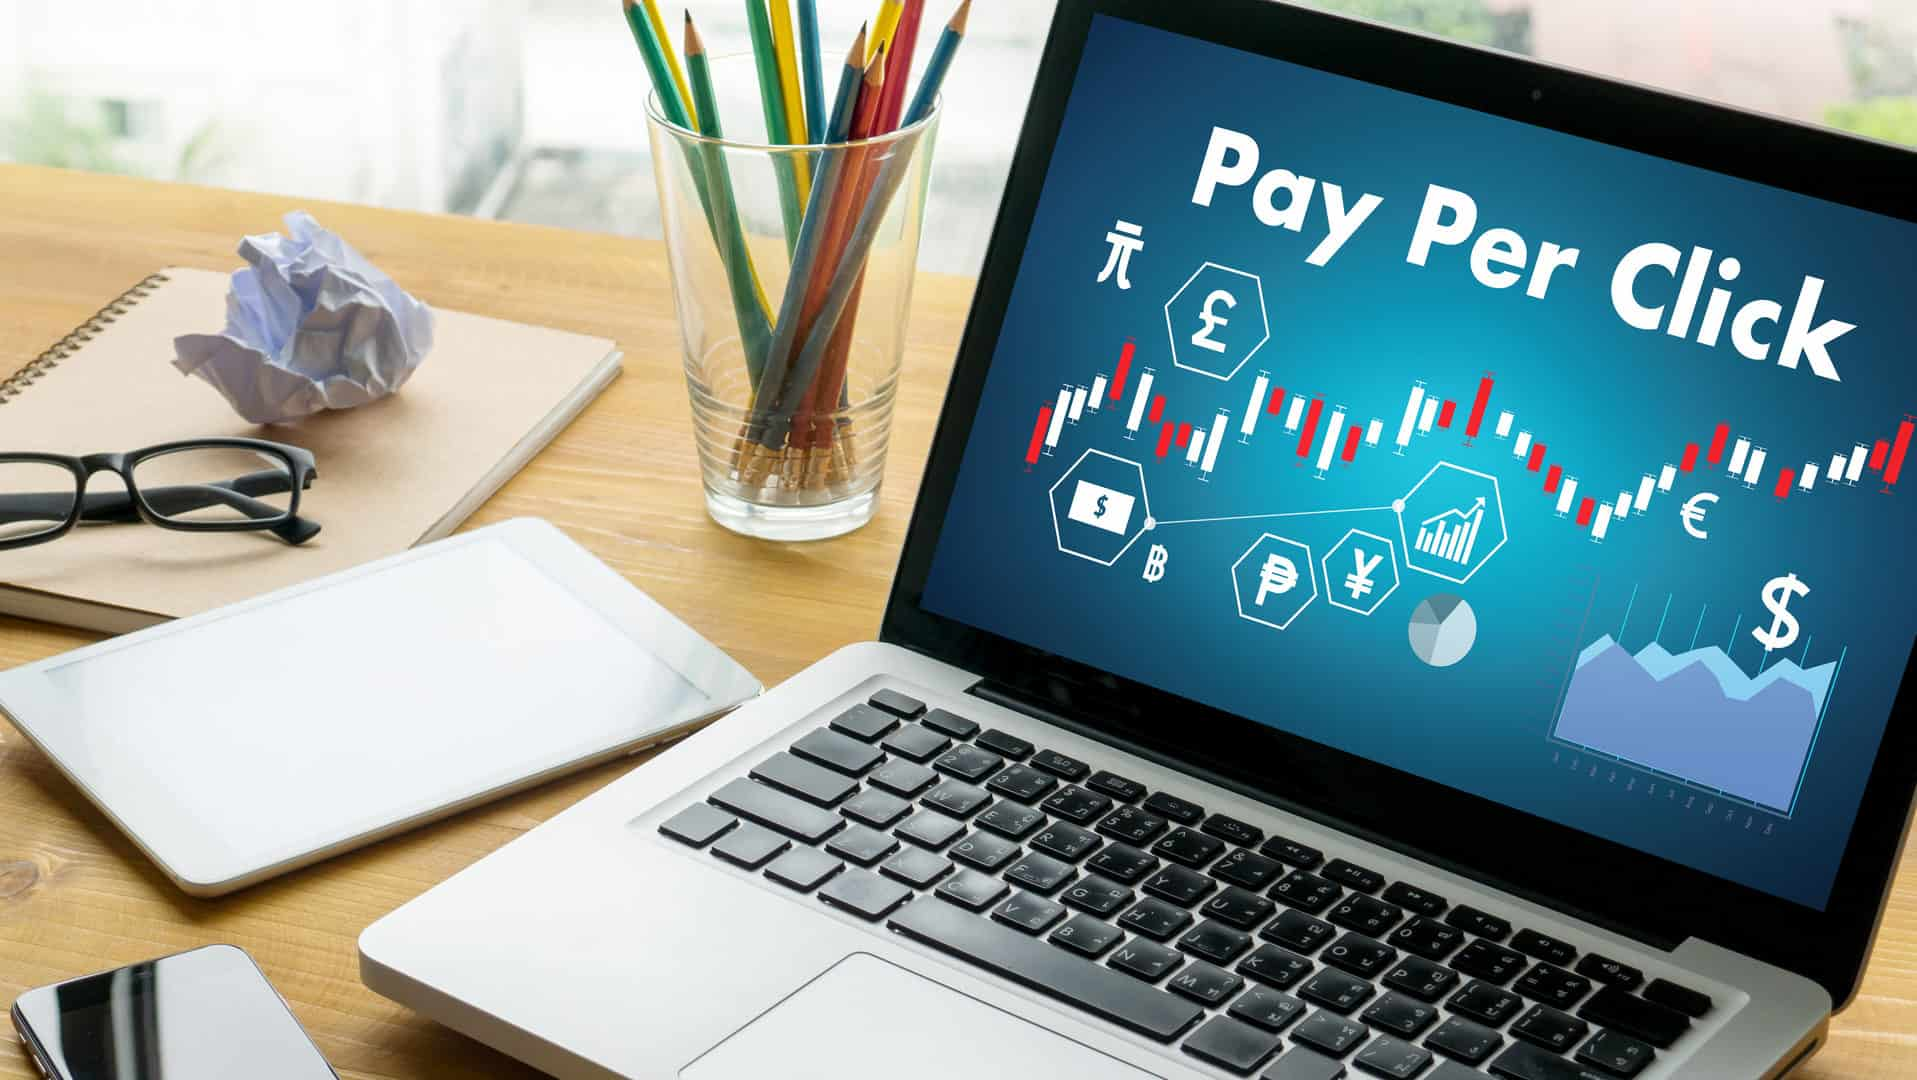 7 Reasons To Add Ppc Advertising To Your 2020 Marketing Mix